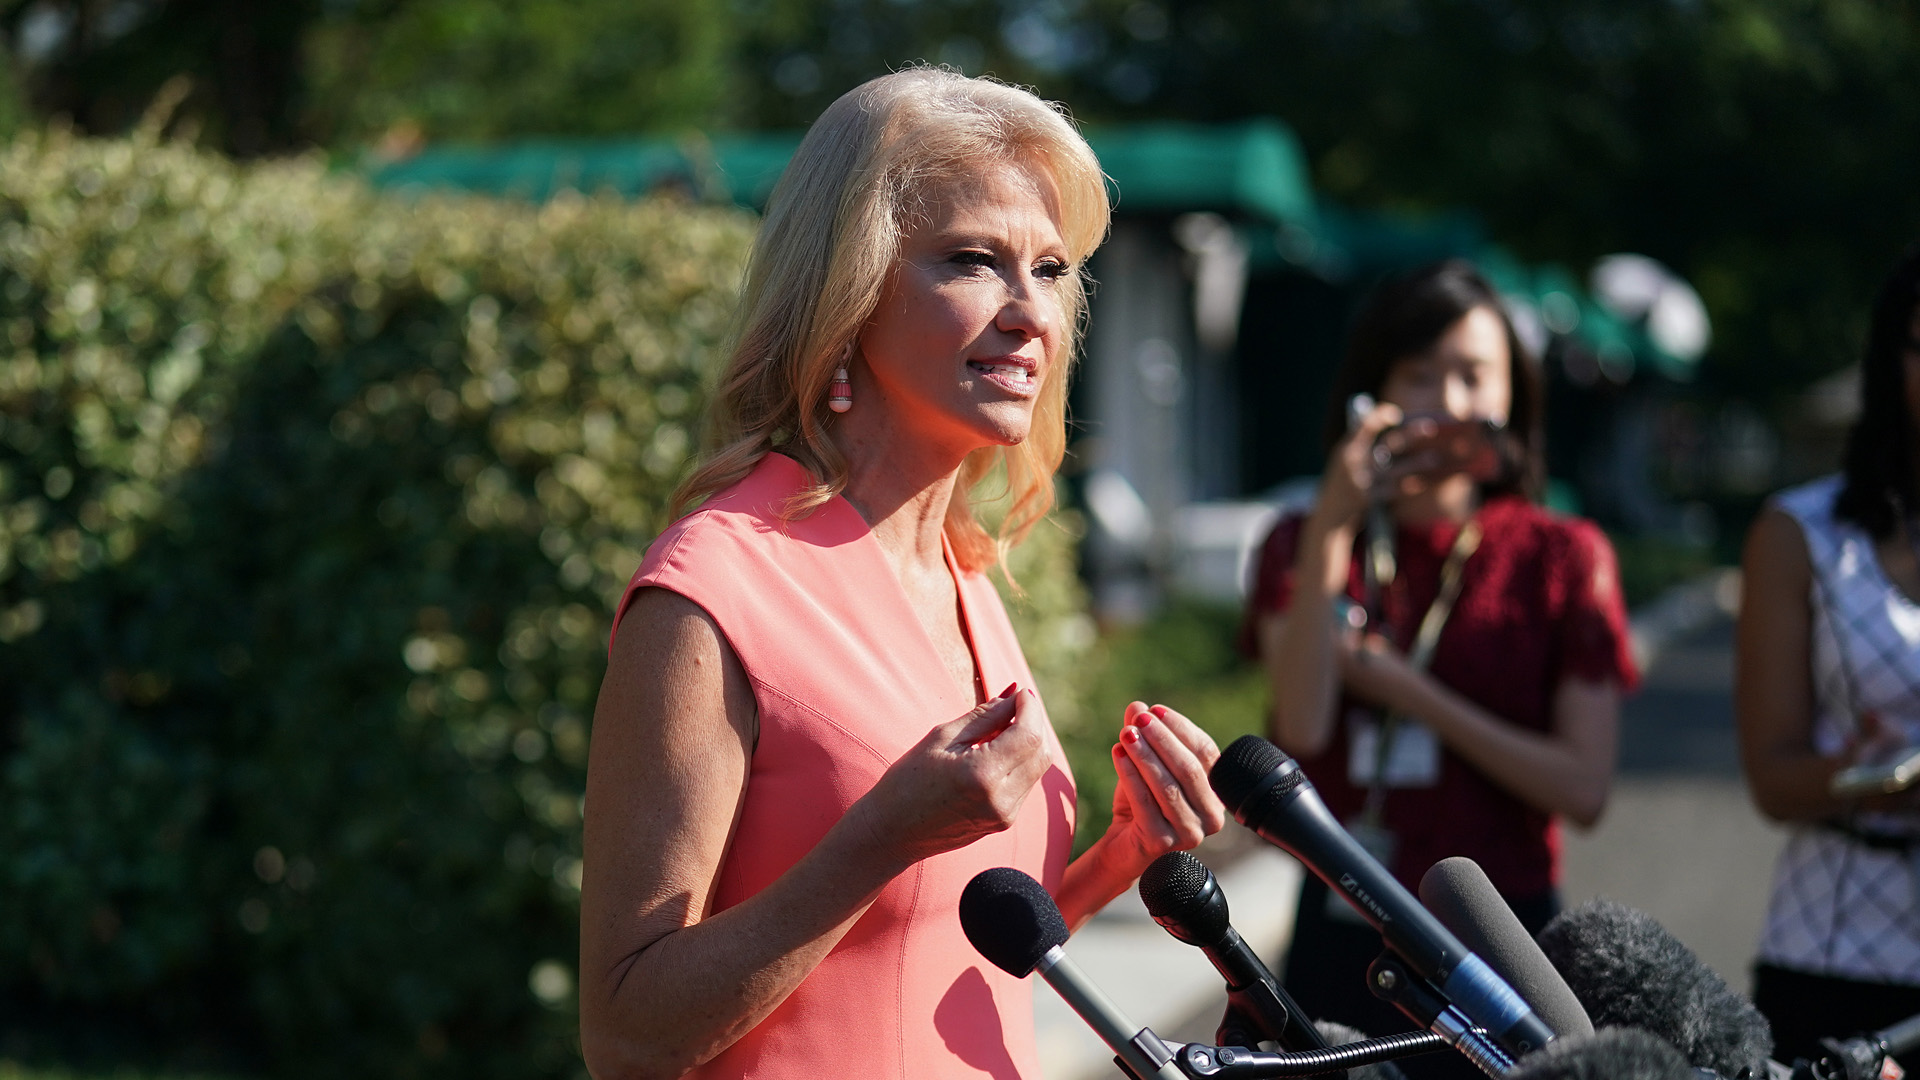 Kellyanne Conway talks to reporters outside the West Wing following a television interview with FOX News at the White House July 02, 2019 in Washington, DC. (Credit: Chip Somodevilla/Getty Images)